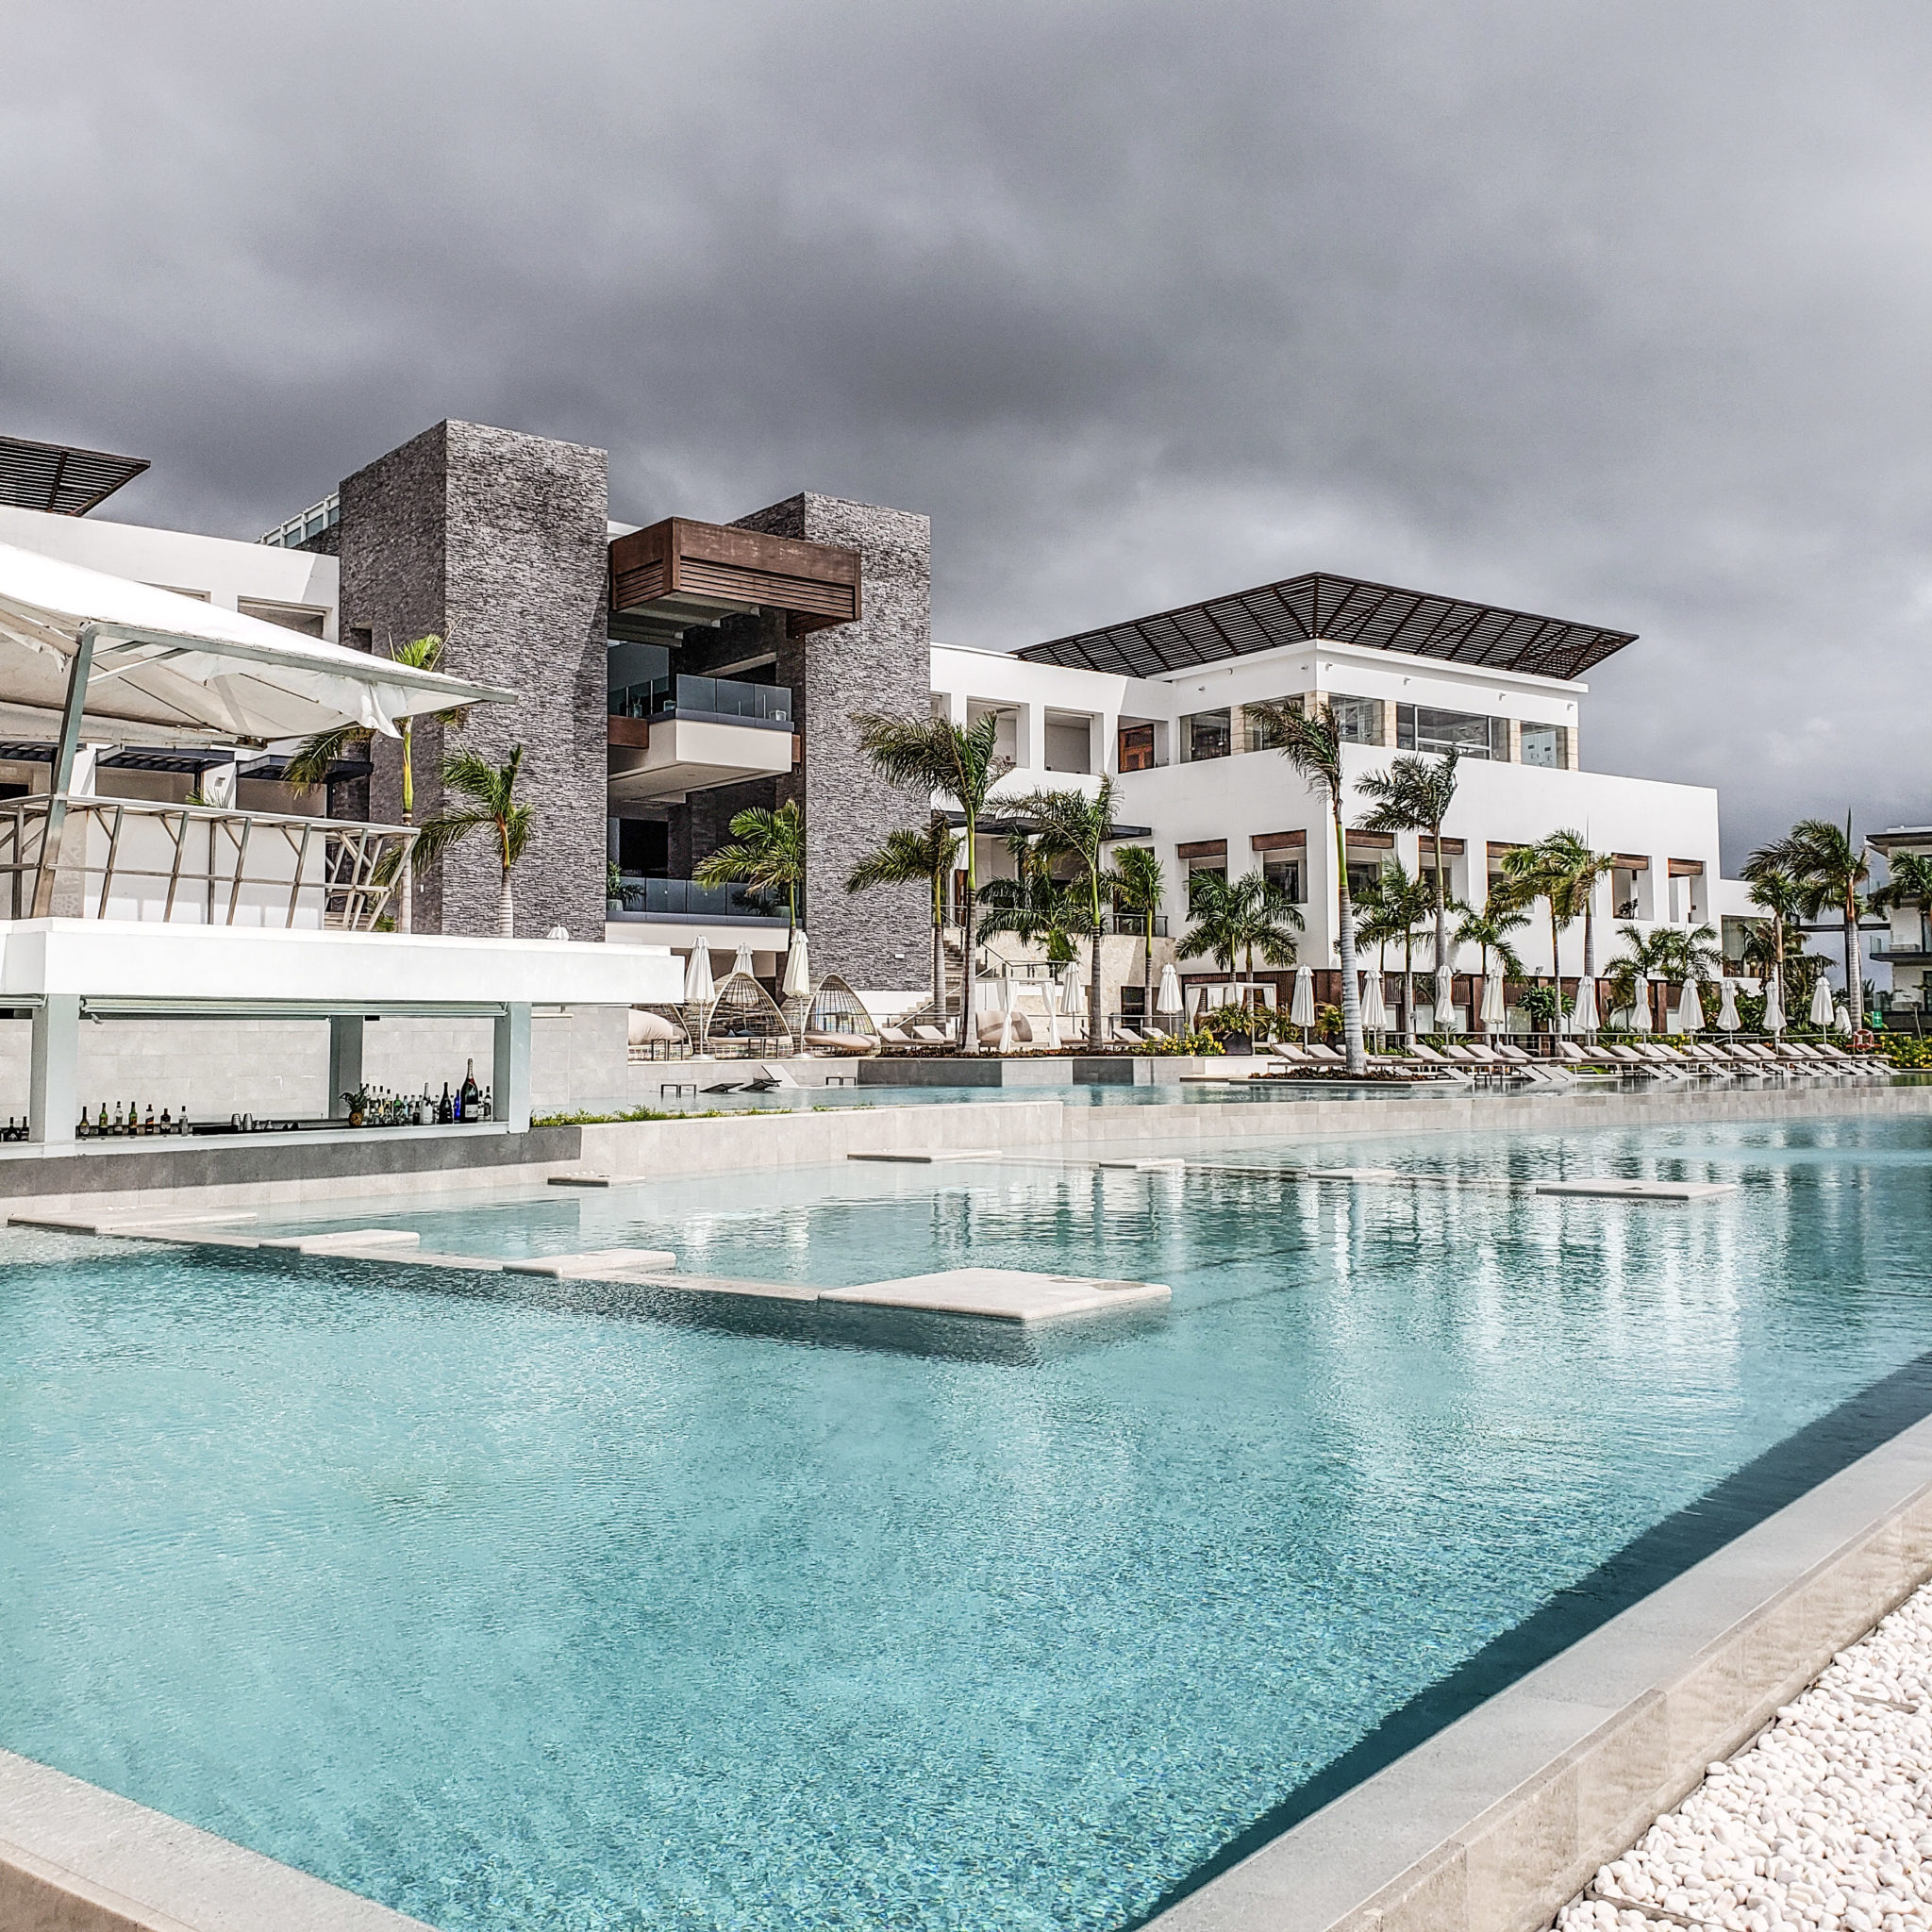 Haven Riviera - Cancun - Haven Resorts - Mexico - Quintana Roo - Pool